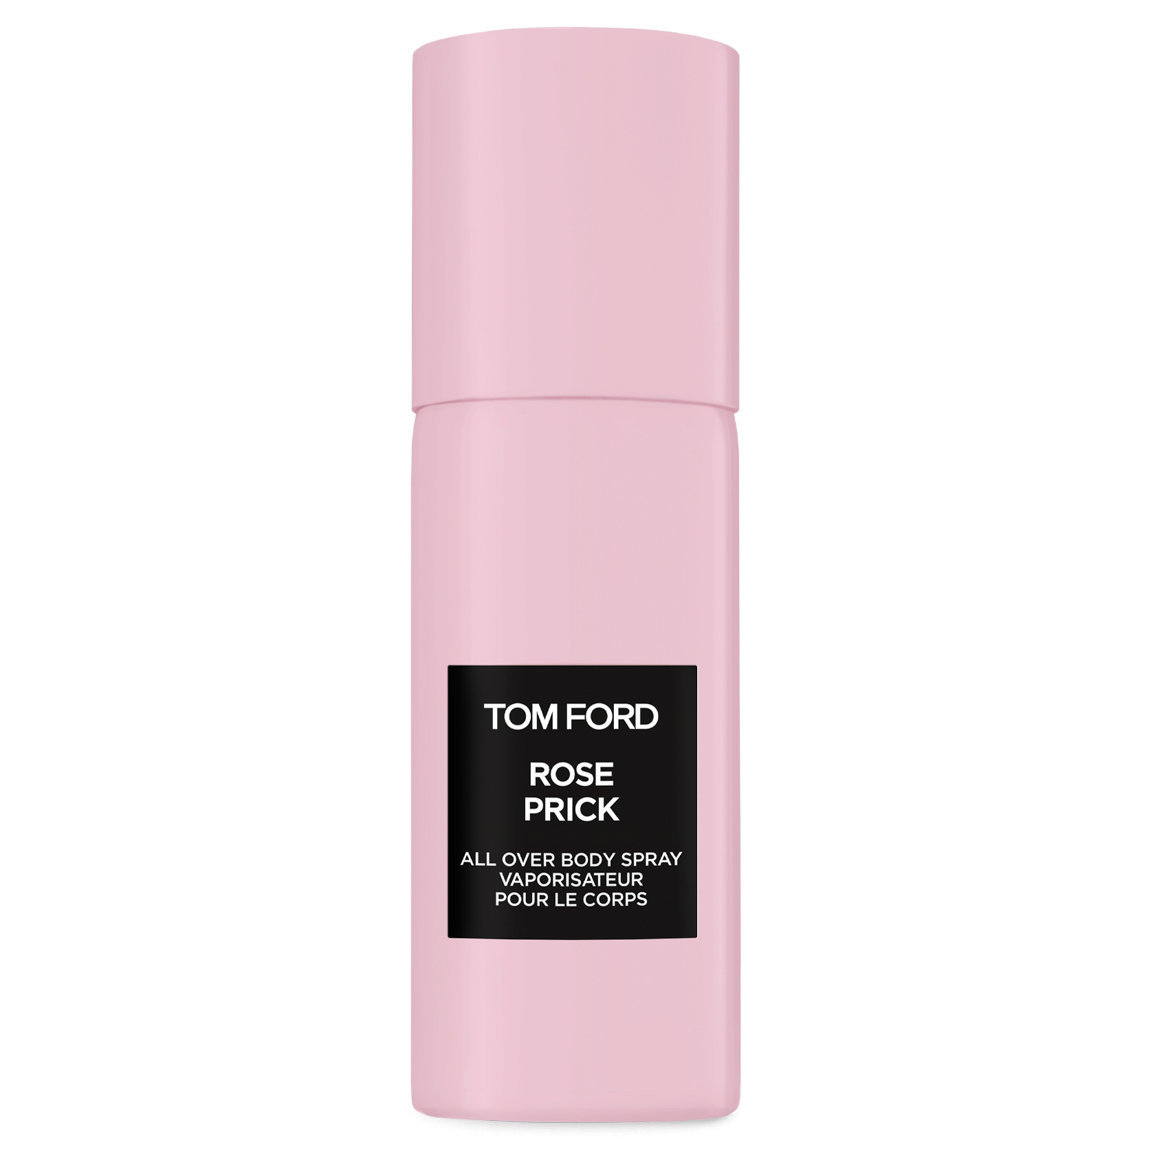 TOM FORD Rose Prick All Over Body Spray alternative view 1 - product swatch.